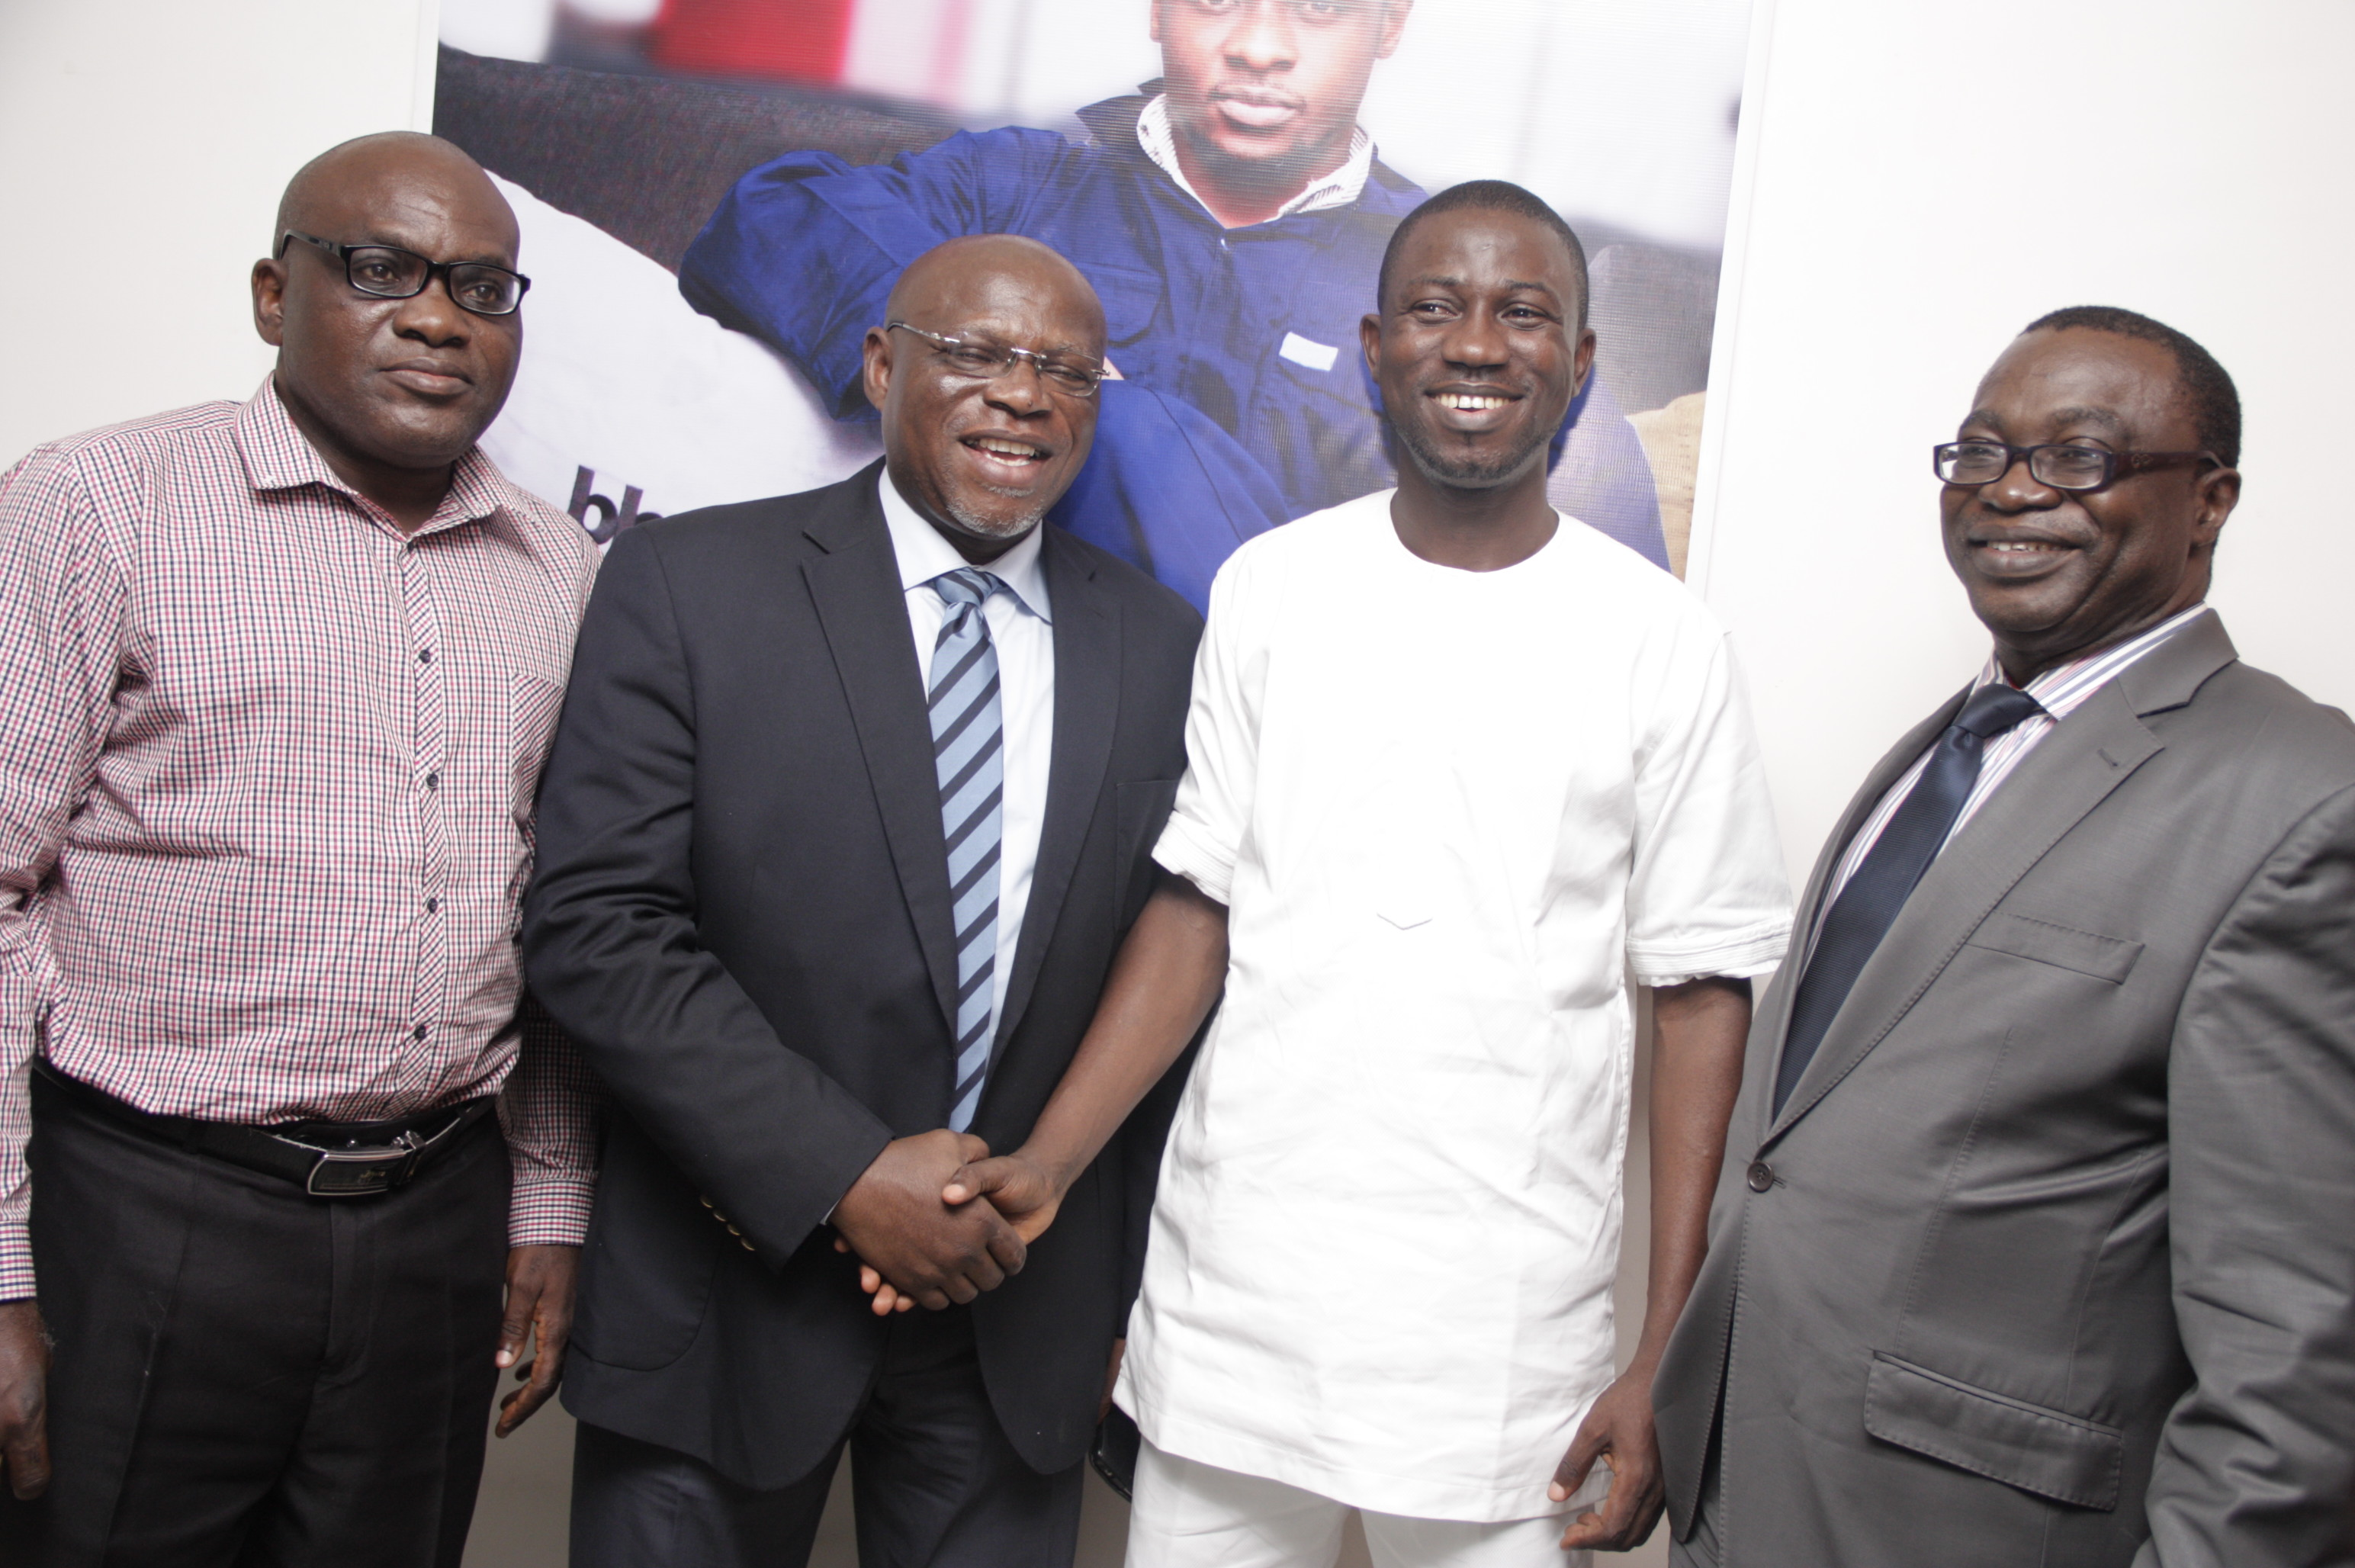 PRCAN Sec.Gen Mr Muyiwa Akintunde  Mediacraft M.D Mr John Ehiguese  BlackHouse Media CEO Ayeni Adekunle and PRCAN President Mr Chido Nwakanma at the BHM PR Mobile App announcement on Tuesday 5th August 2014